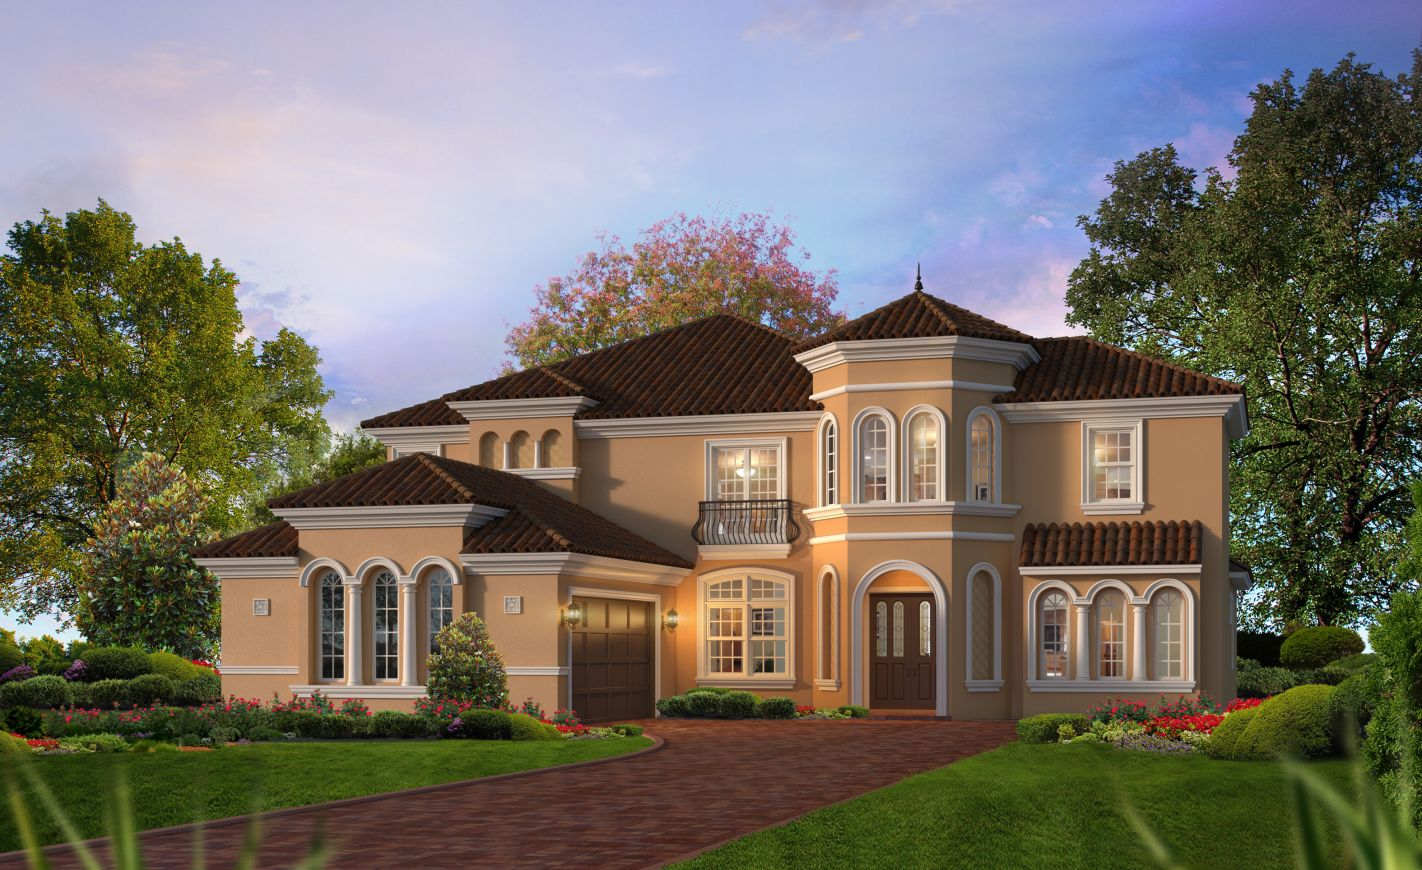 Palm Coast Homes for Sale - The Augusta at The Conservatory